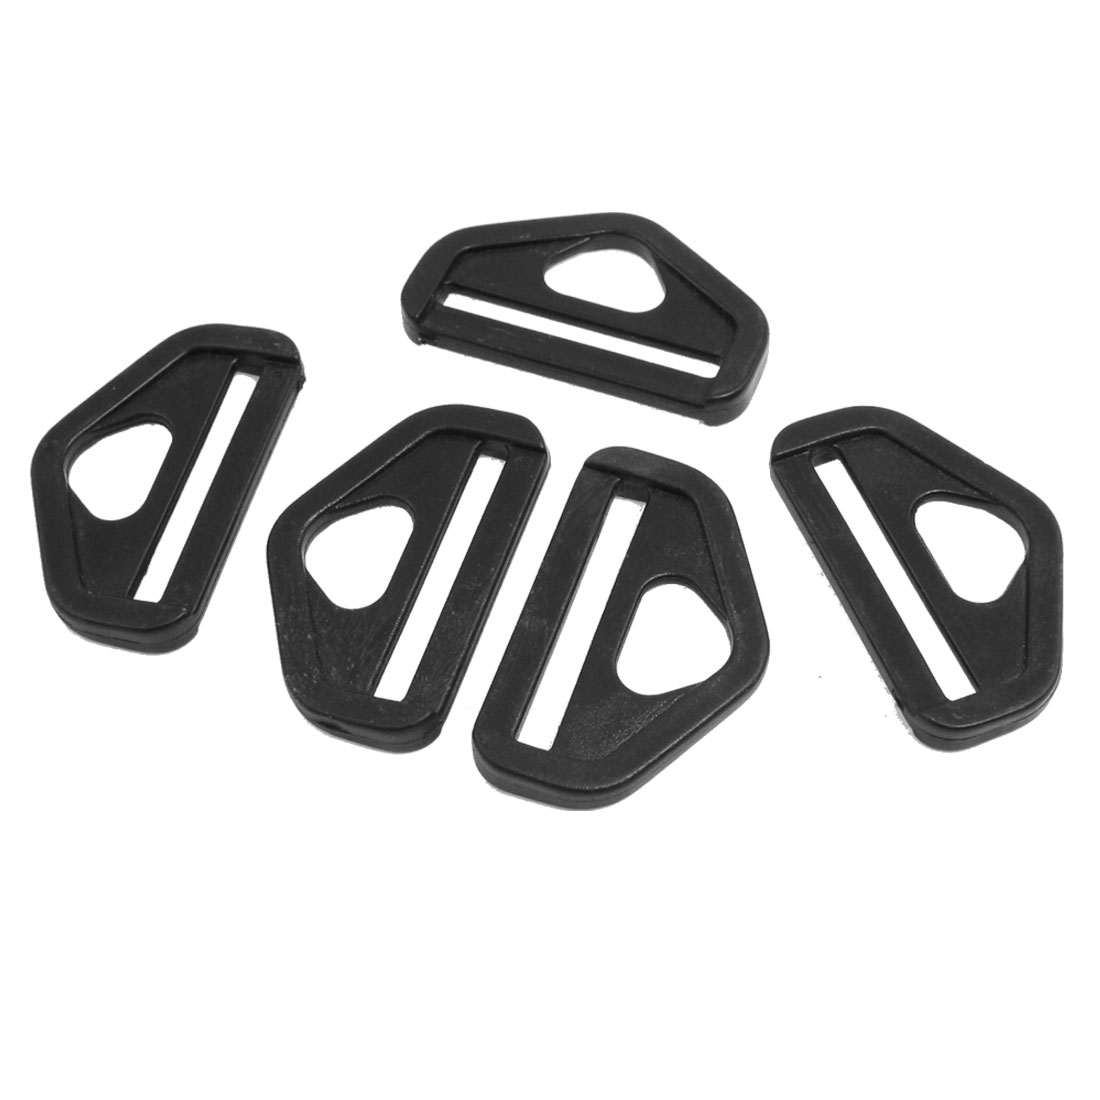 "1.5"" Spare Parts Black Plastic D Ring Buckle for Backpack Bag 5 Pcs"